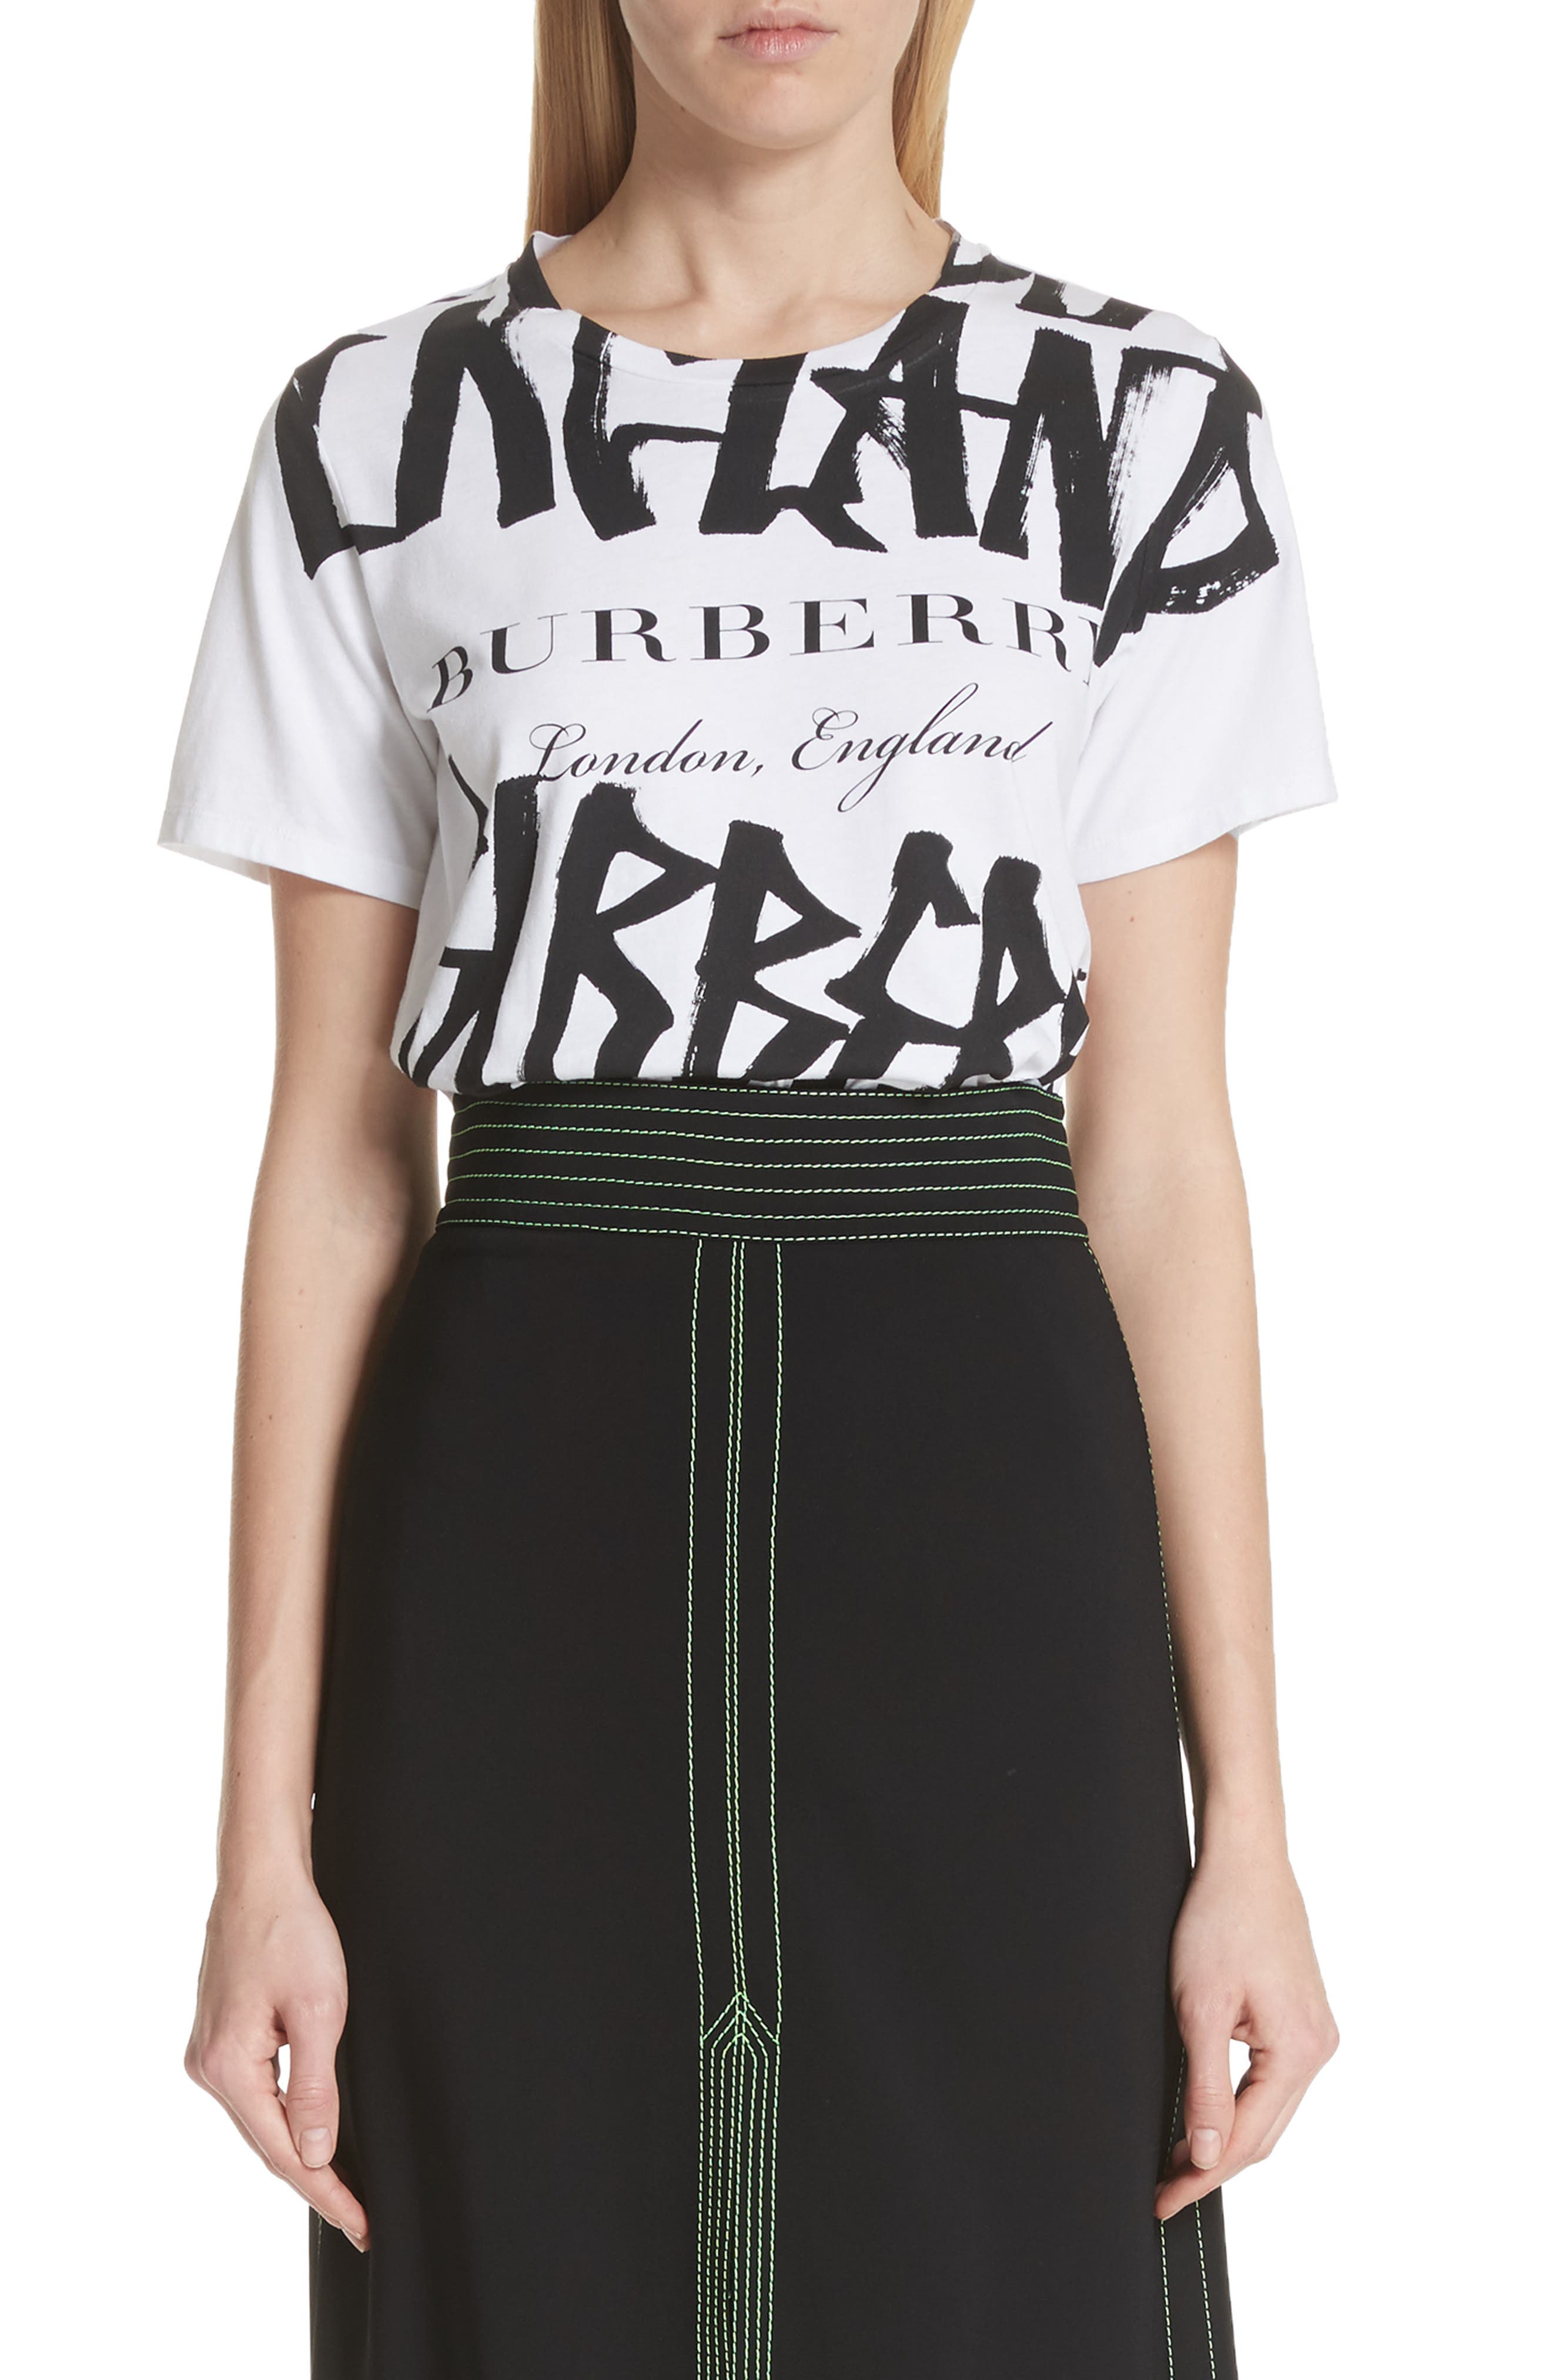 Burberry Boulder Graphic Tee